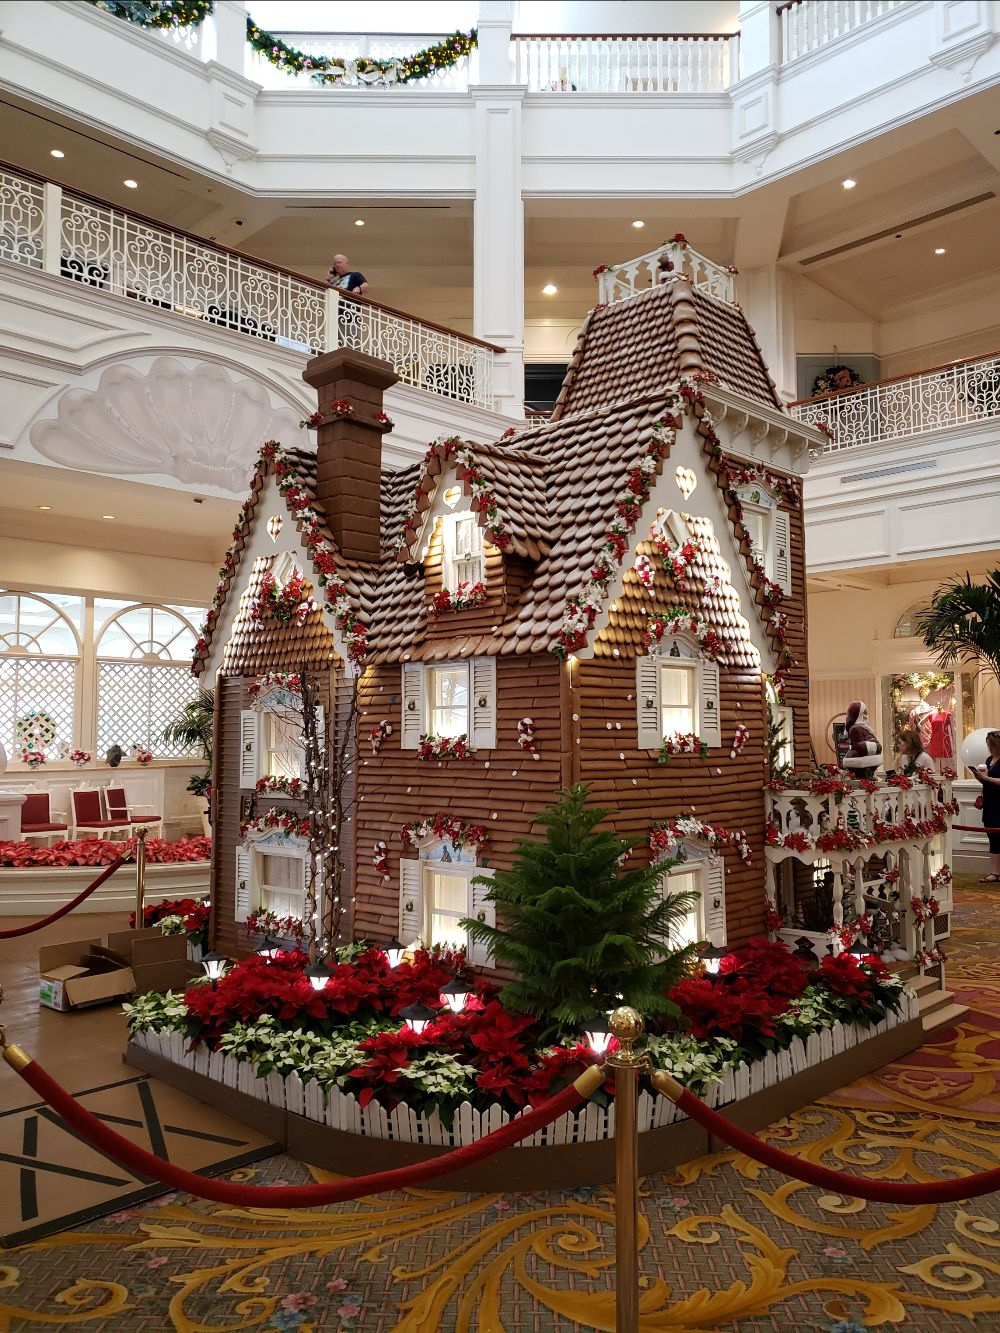 Gingerbread House at The Grand